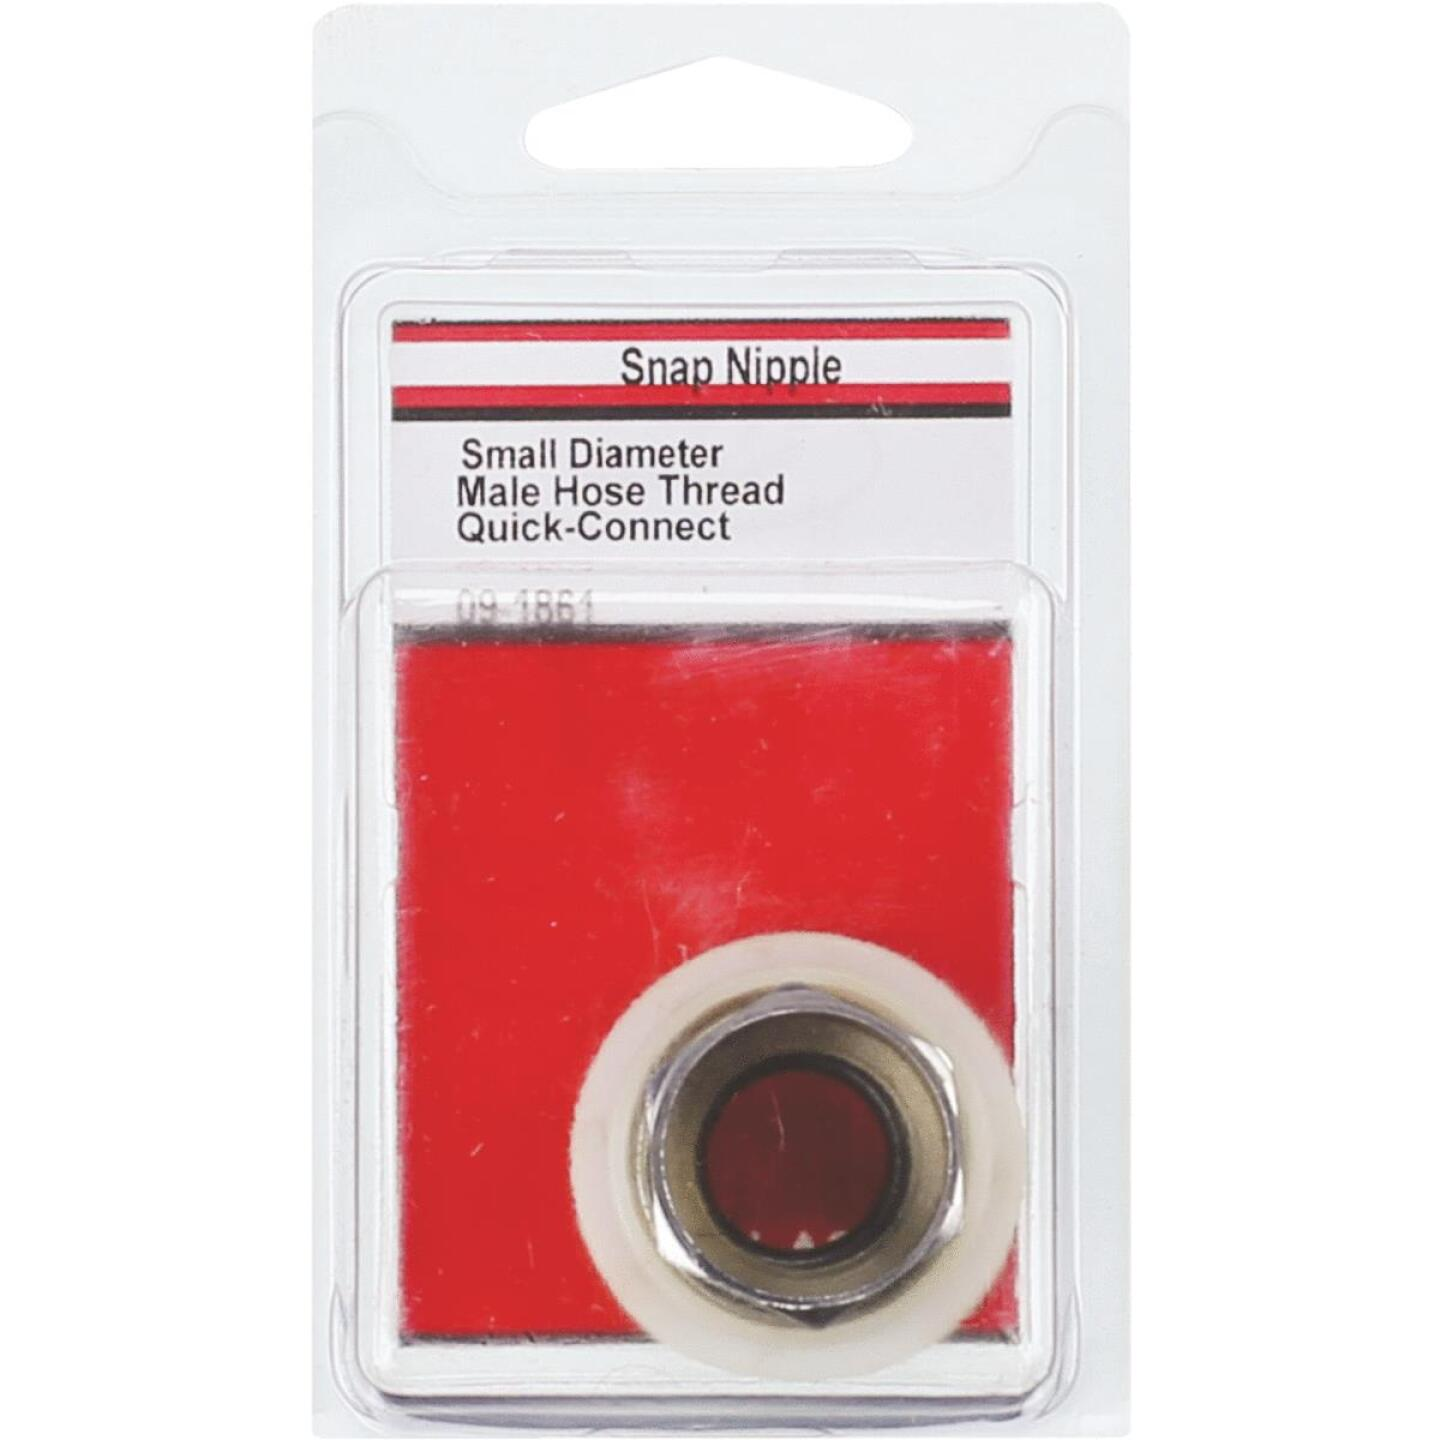 Lasco Faucet Snap Fitting for Washing Machine Connector Image 2